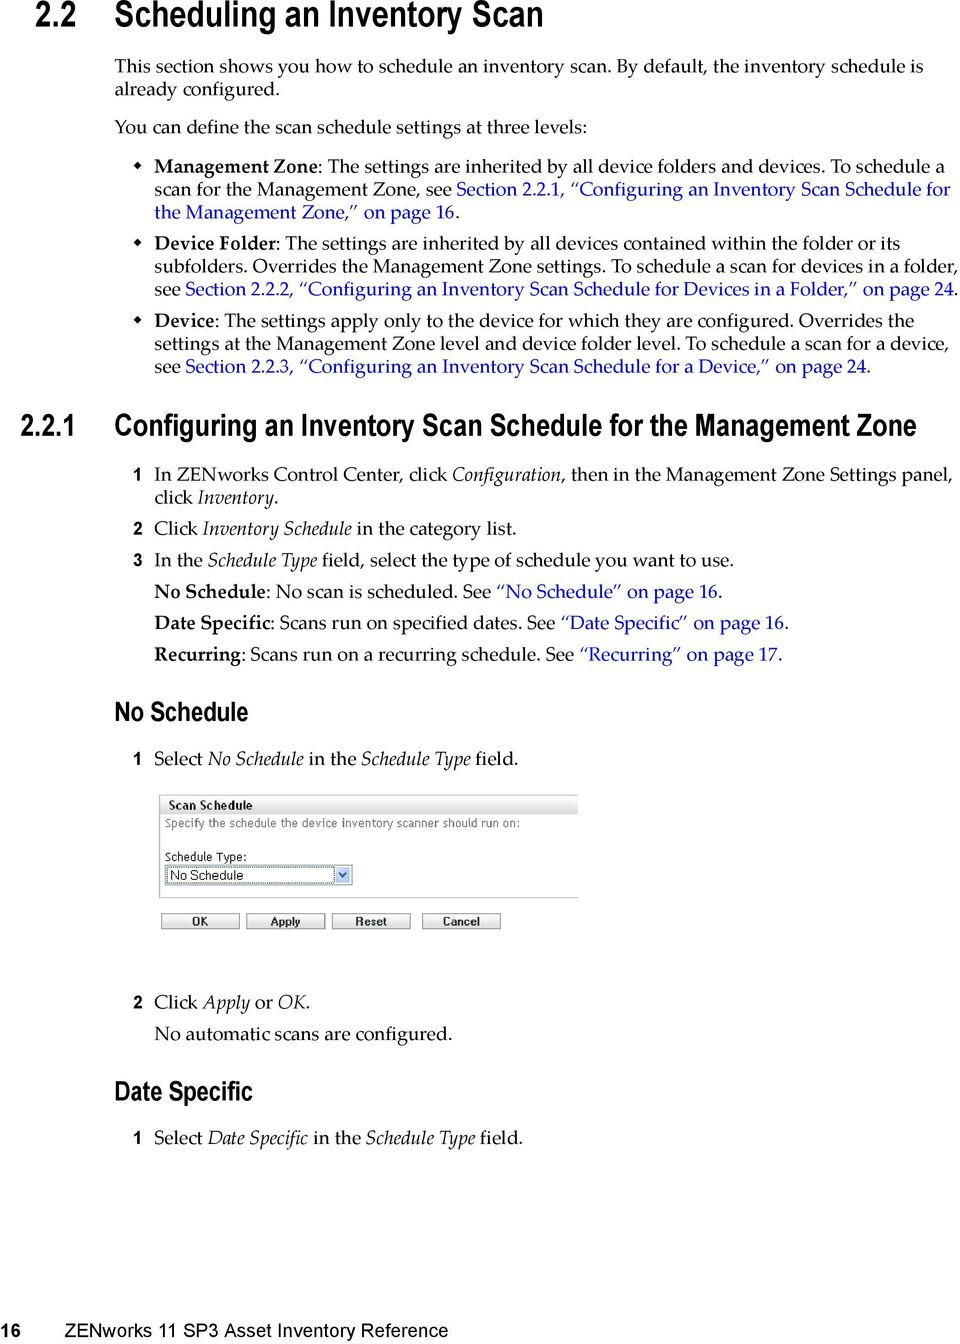 2.1, Configuring an Inventory Scan Schedule for the Management Zone, on page 16. Device Folder: The settings are inherited by all devices contained within the folder or its subfolders.